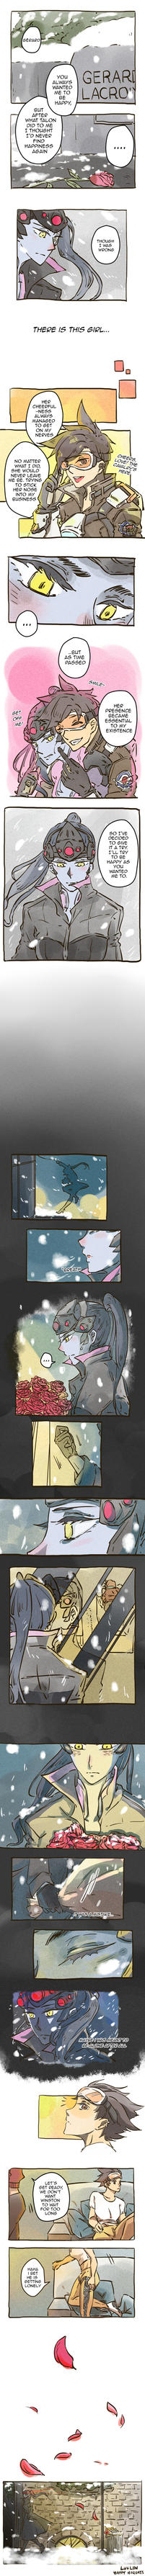 Happy Holiday!? by Shocolad